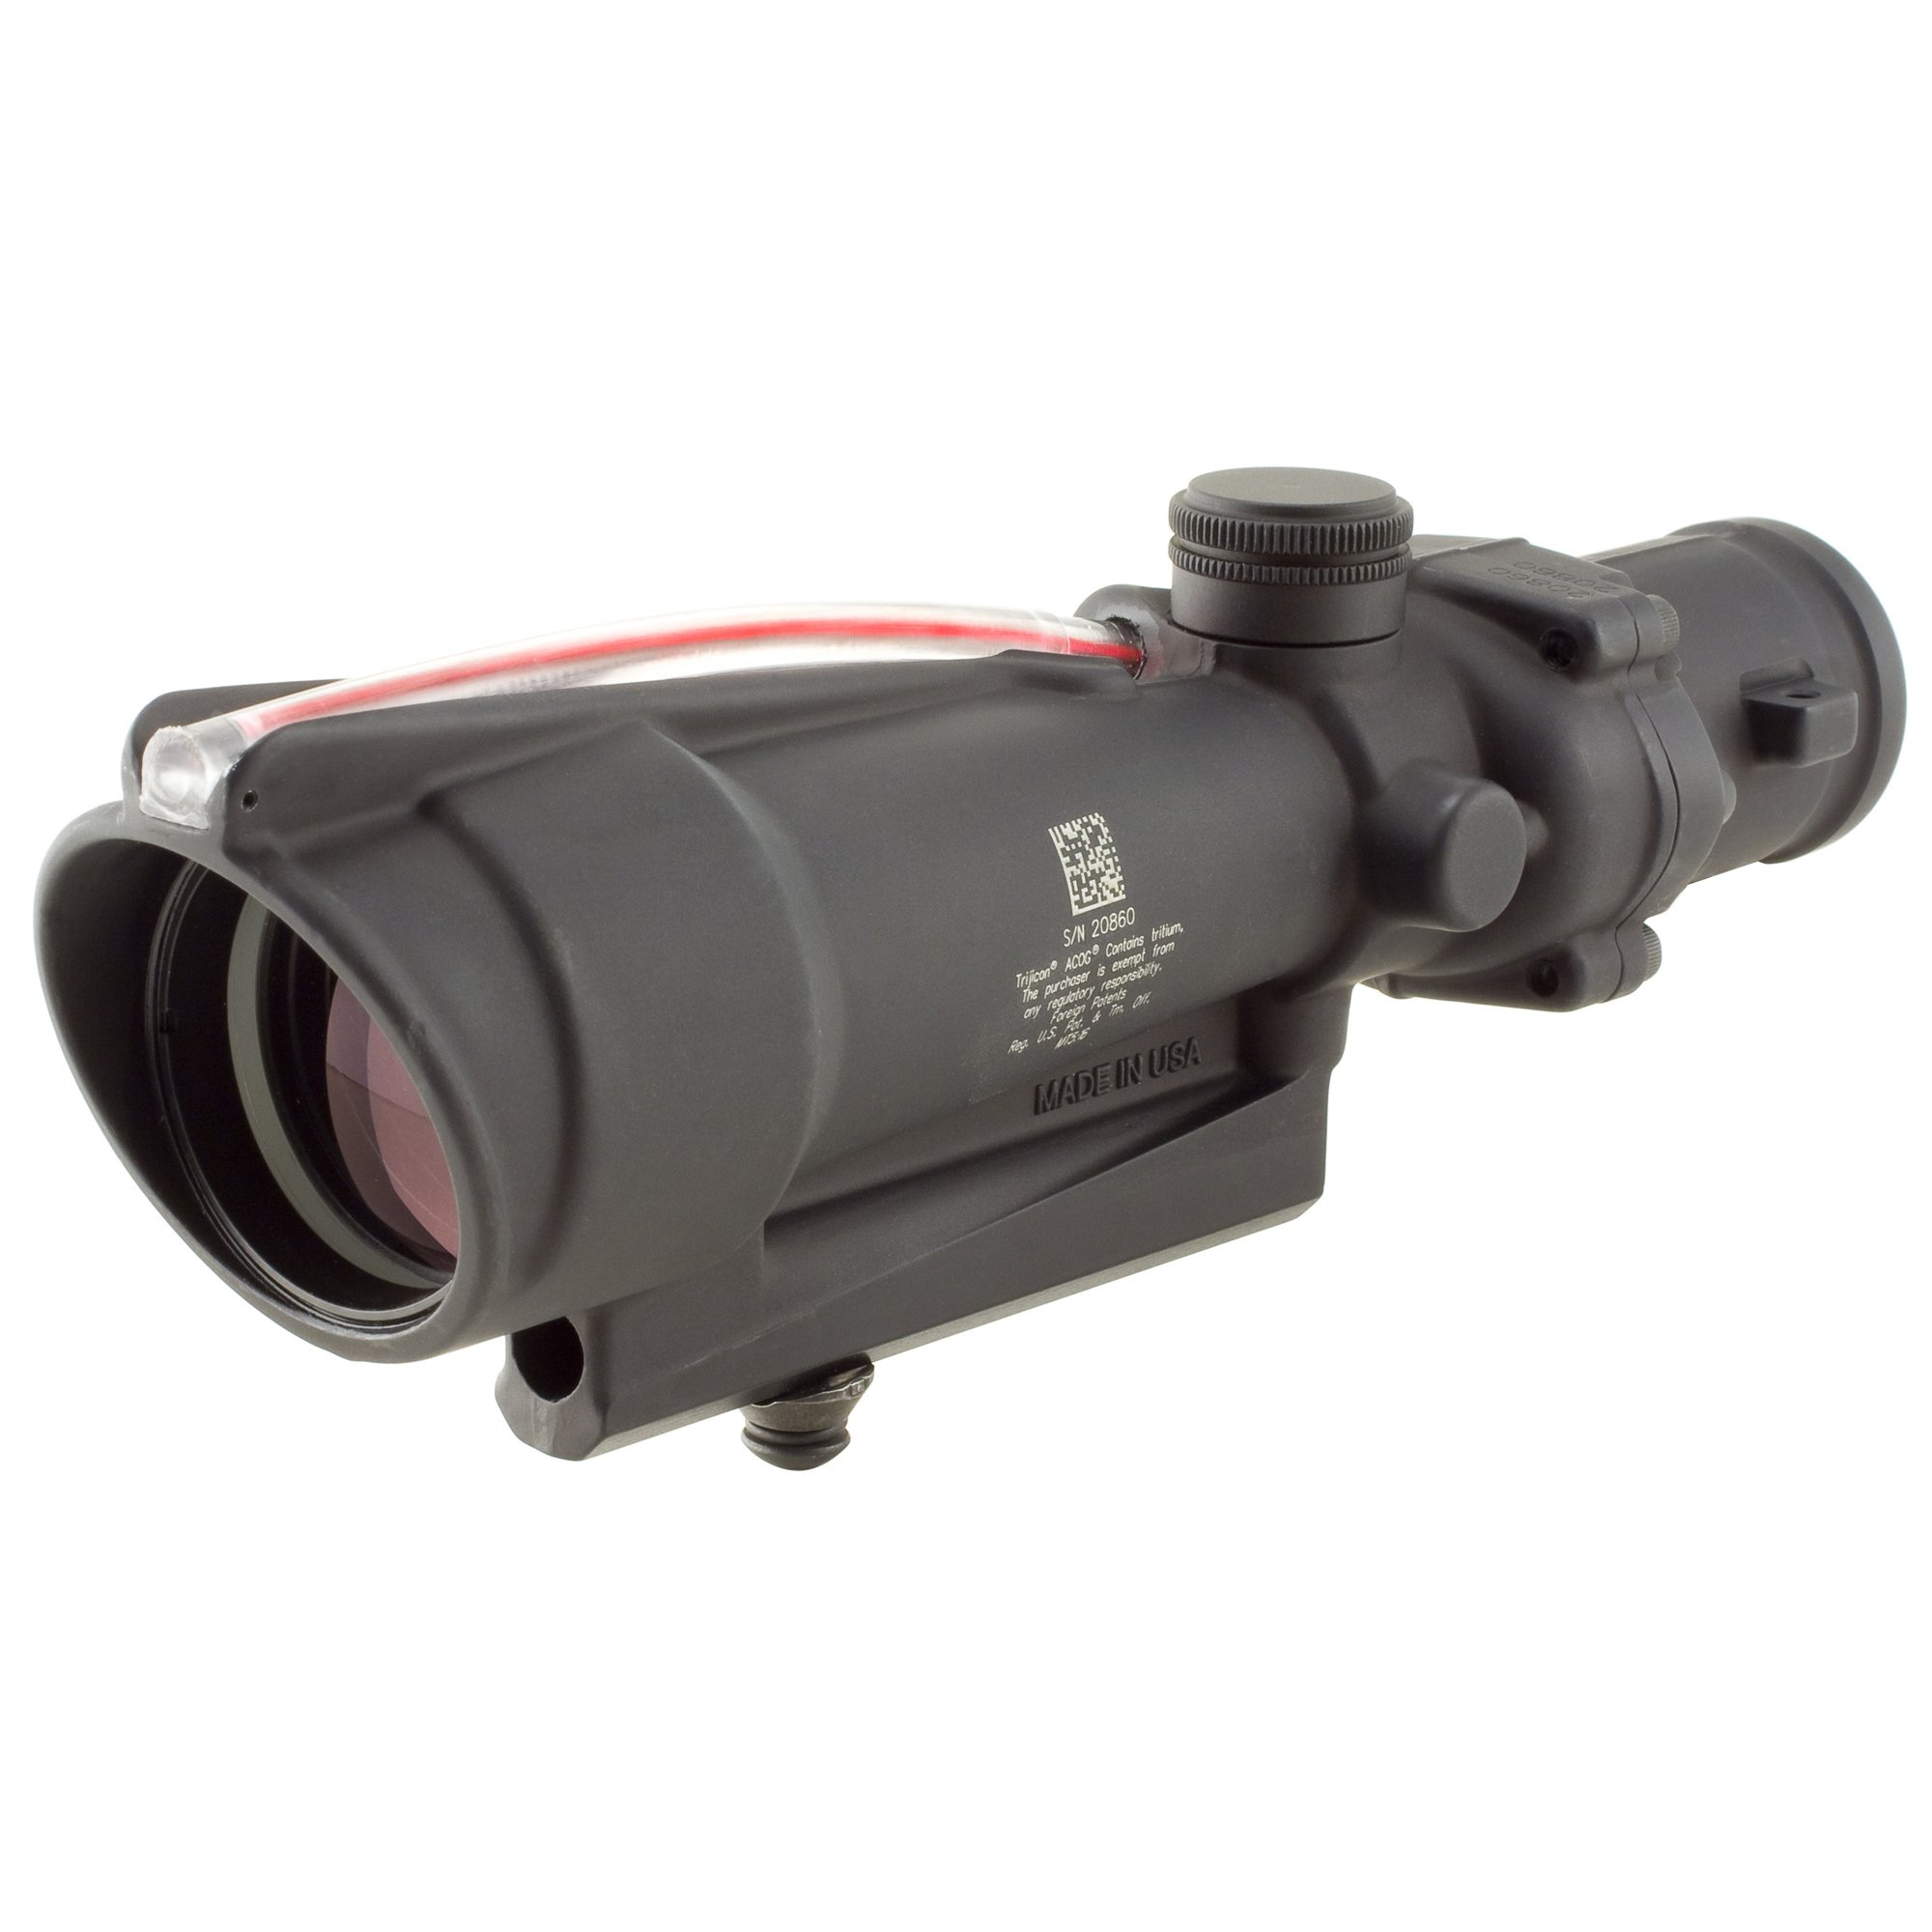 Trijicon Acog 3.5x35 M16 .308 Reticle